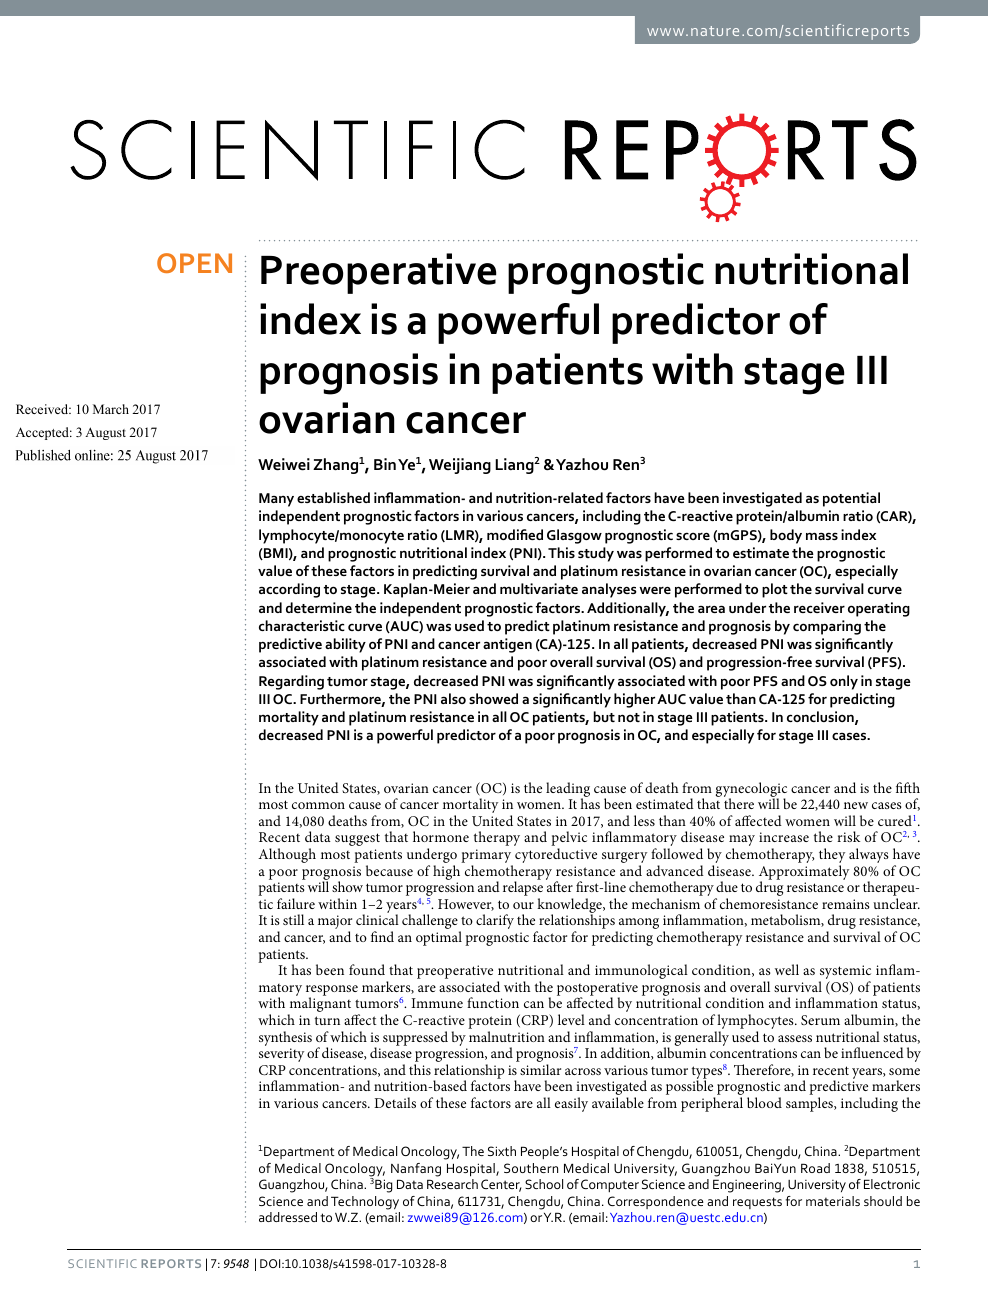 Preoperative Prognostic Nutritional Index Is A Powerful Predictor Of Prognosis In Patients With Stage Iii Ovarian Cancer Topic Of Research Paper In Clinical Medicine Download Scholarly Article Pdf And Read For